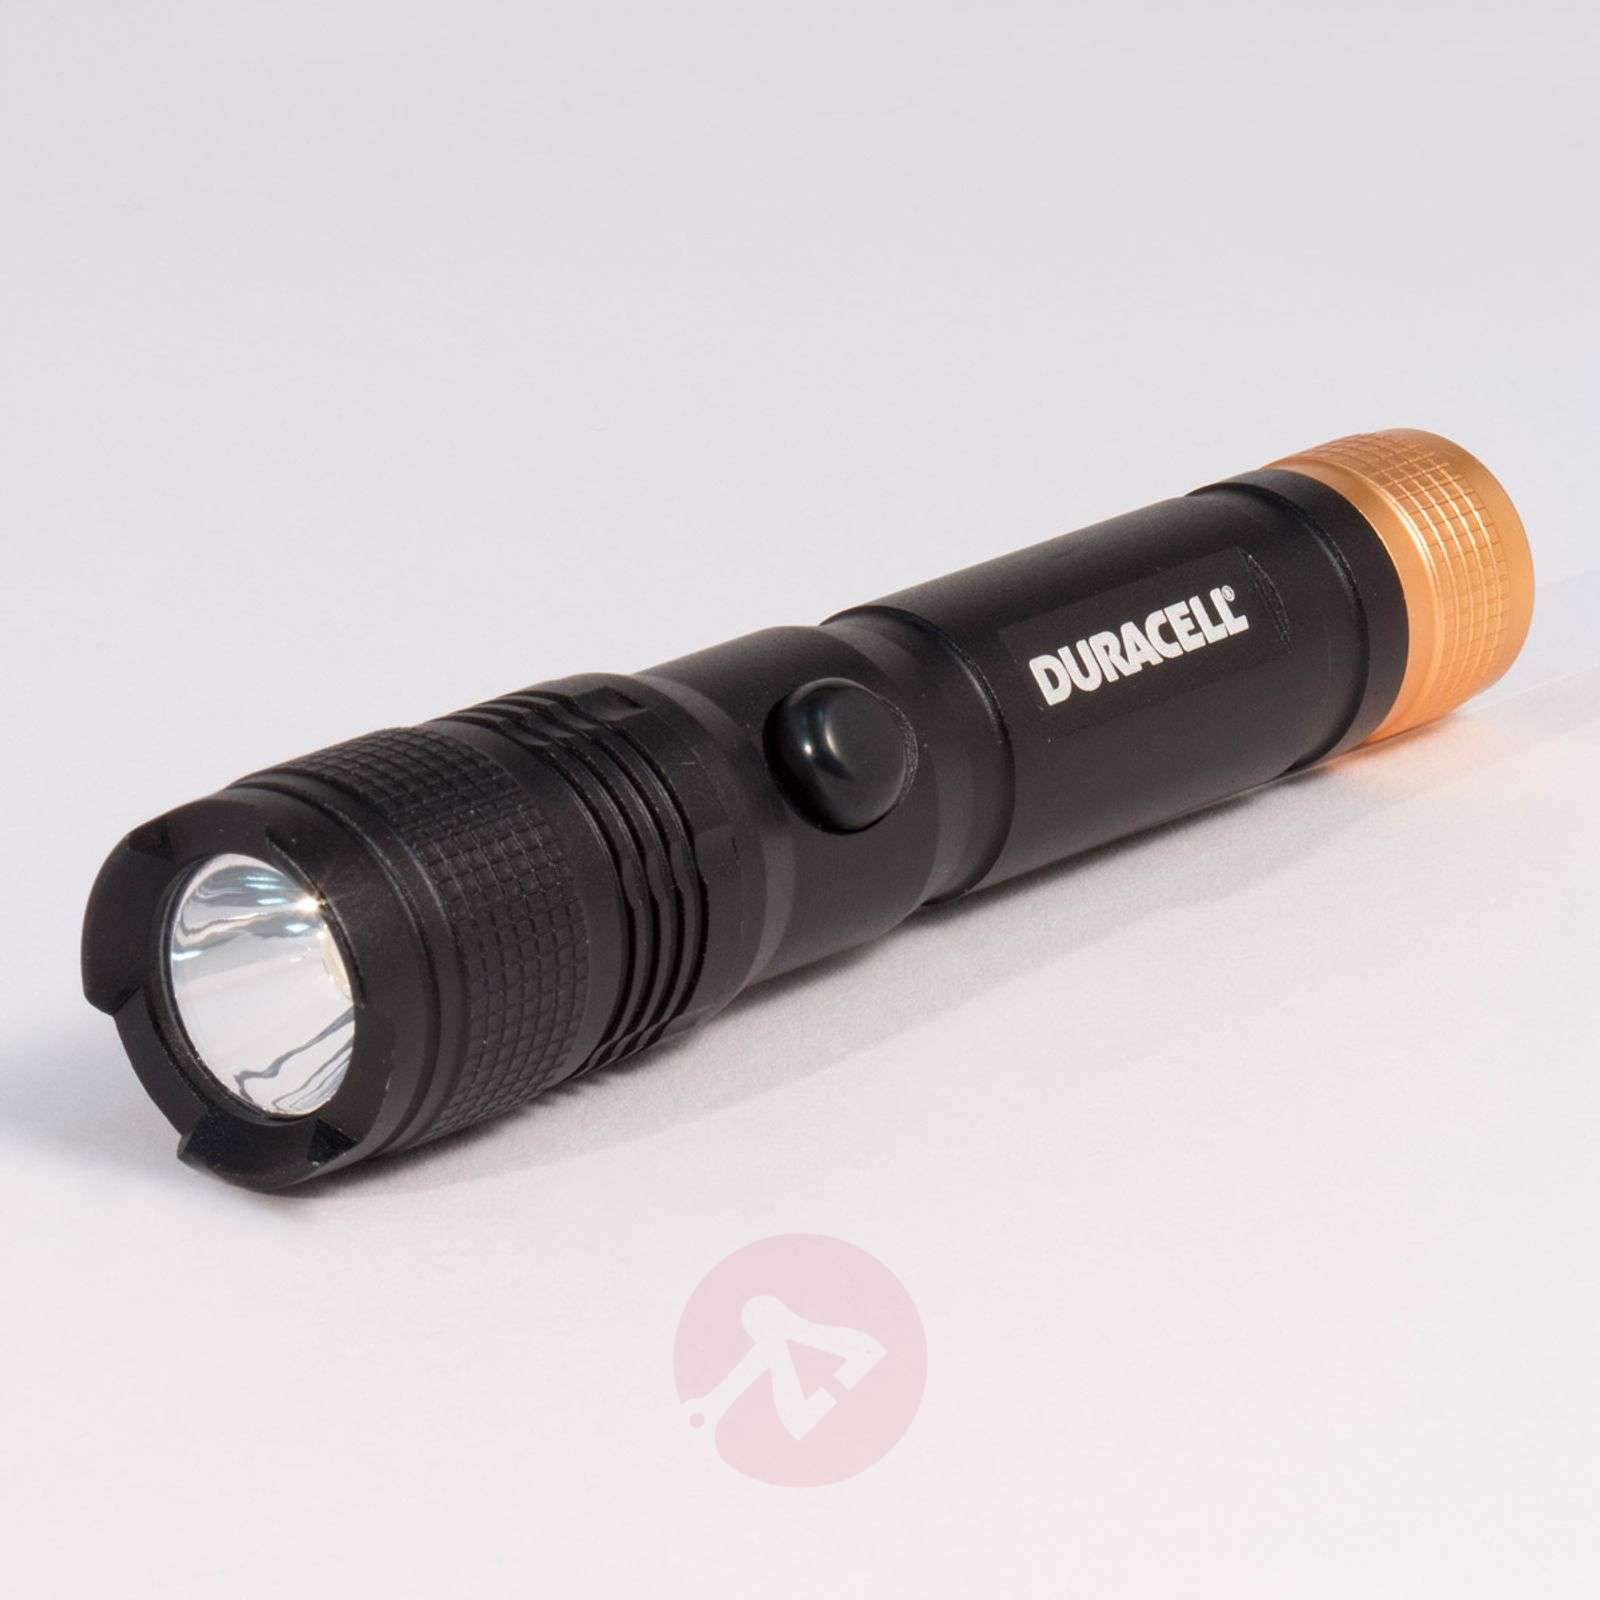 Compact CMP-7 LED torch-2610018-01